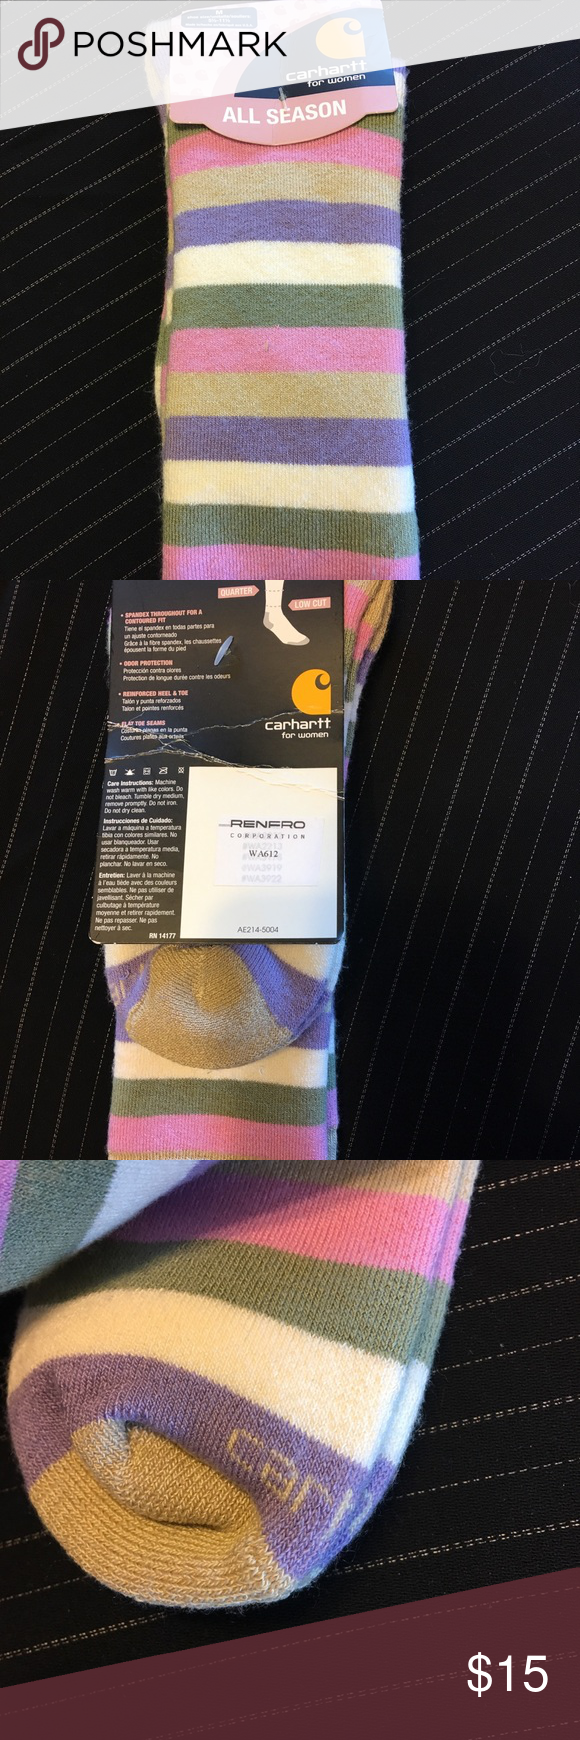 Carhartt Women's Stripped Socks Carhartt women's stripped socks brand new! Size medium 5 1/2 - 11 1/2. Thick socks great for winter. Carhartt Other #carharttwomen